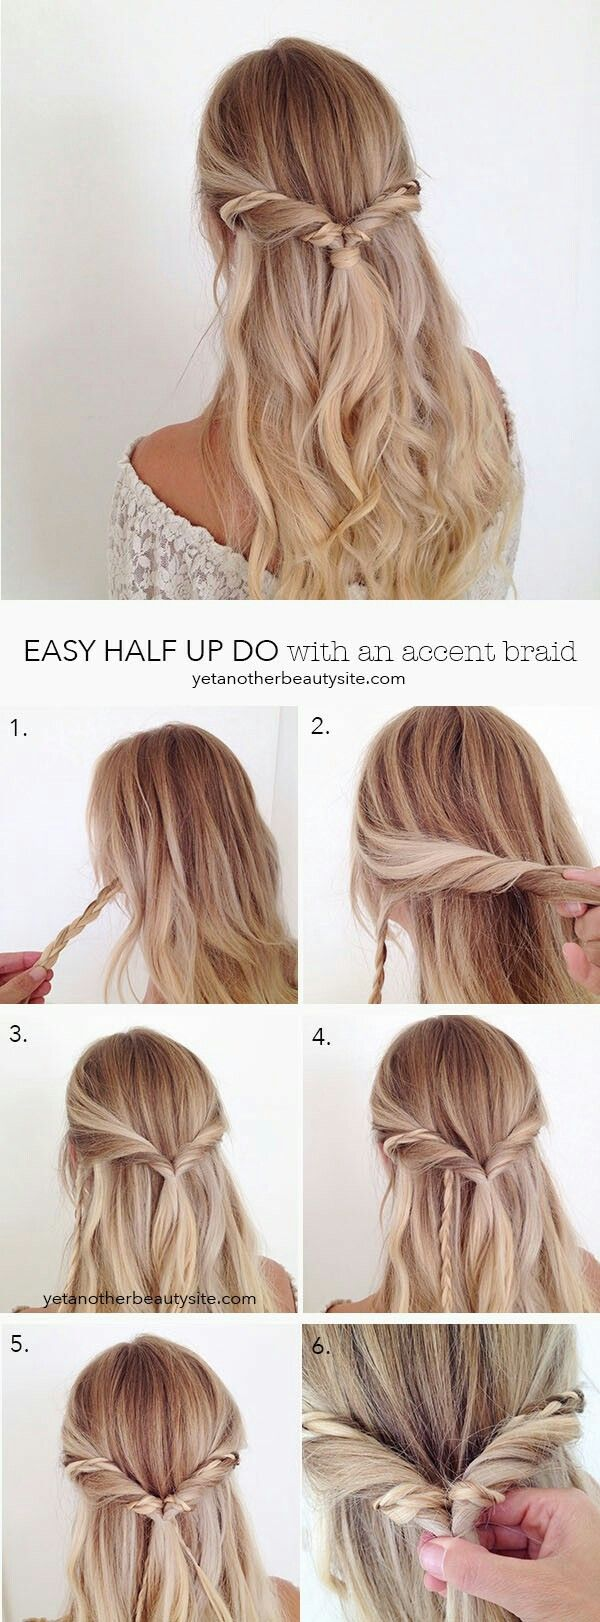 best images about beauty on pinterest beauty tips diy beauty